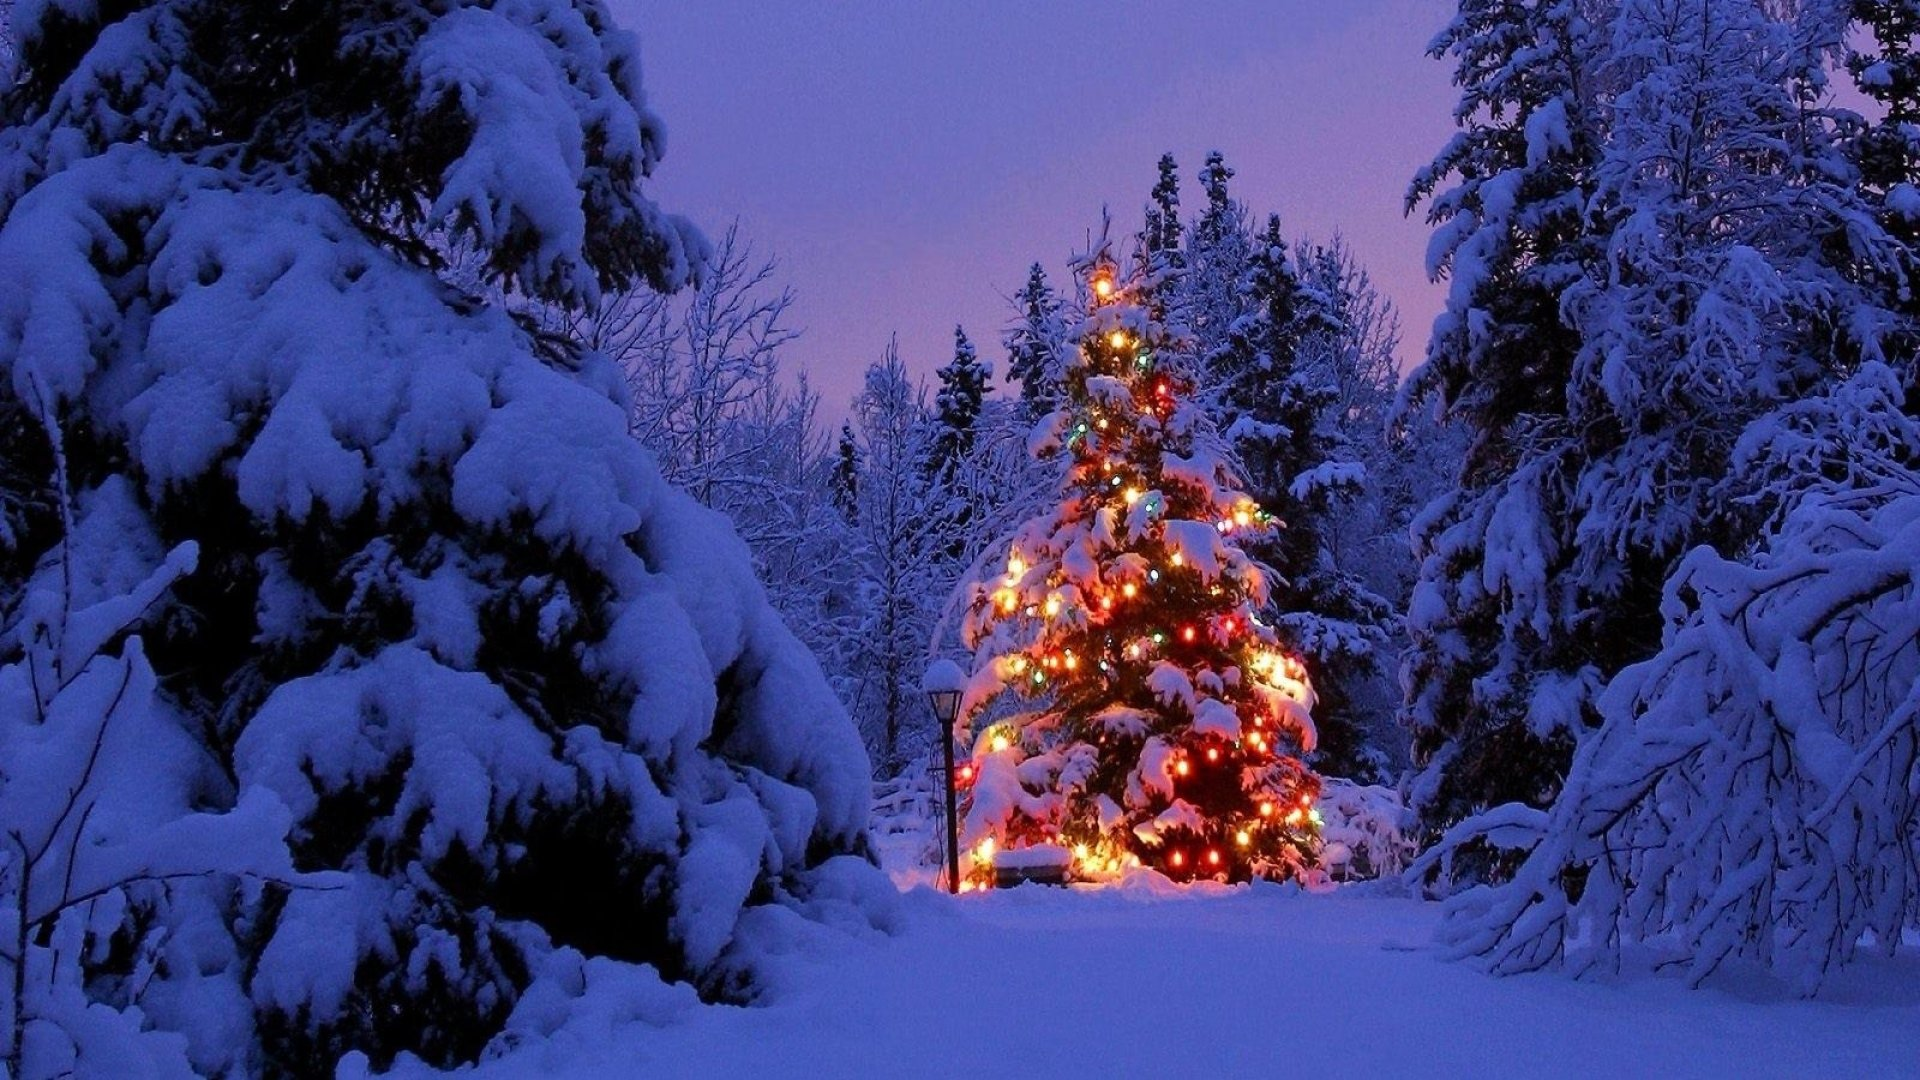 Blue Christmas Tree Forum Avatar: Christmas Tree Covered In Snow 4k Ultra HD Wallpaper